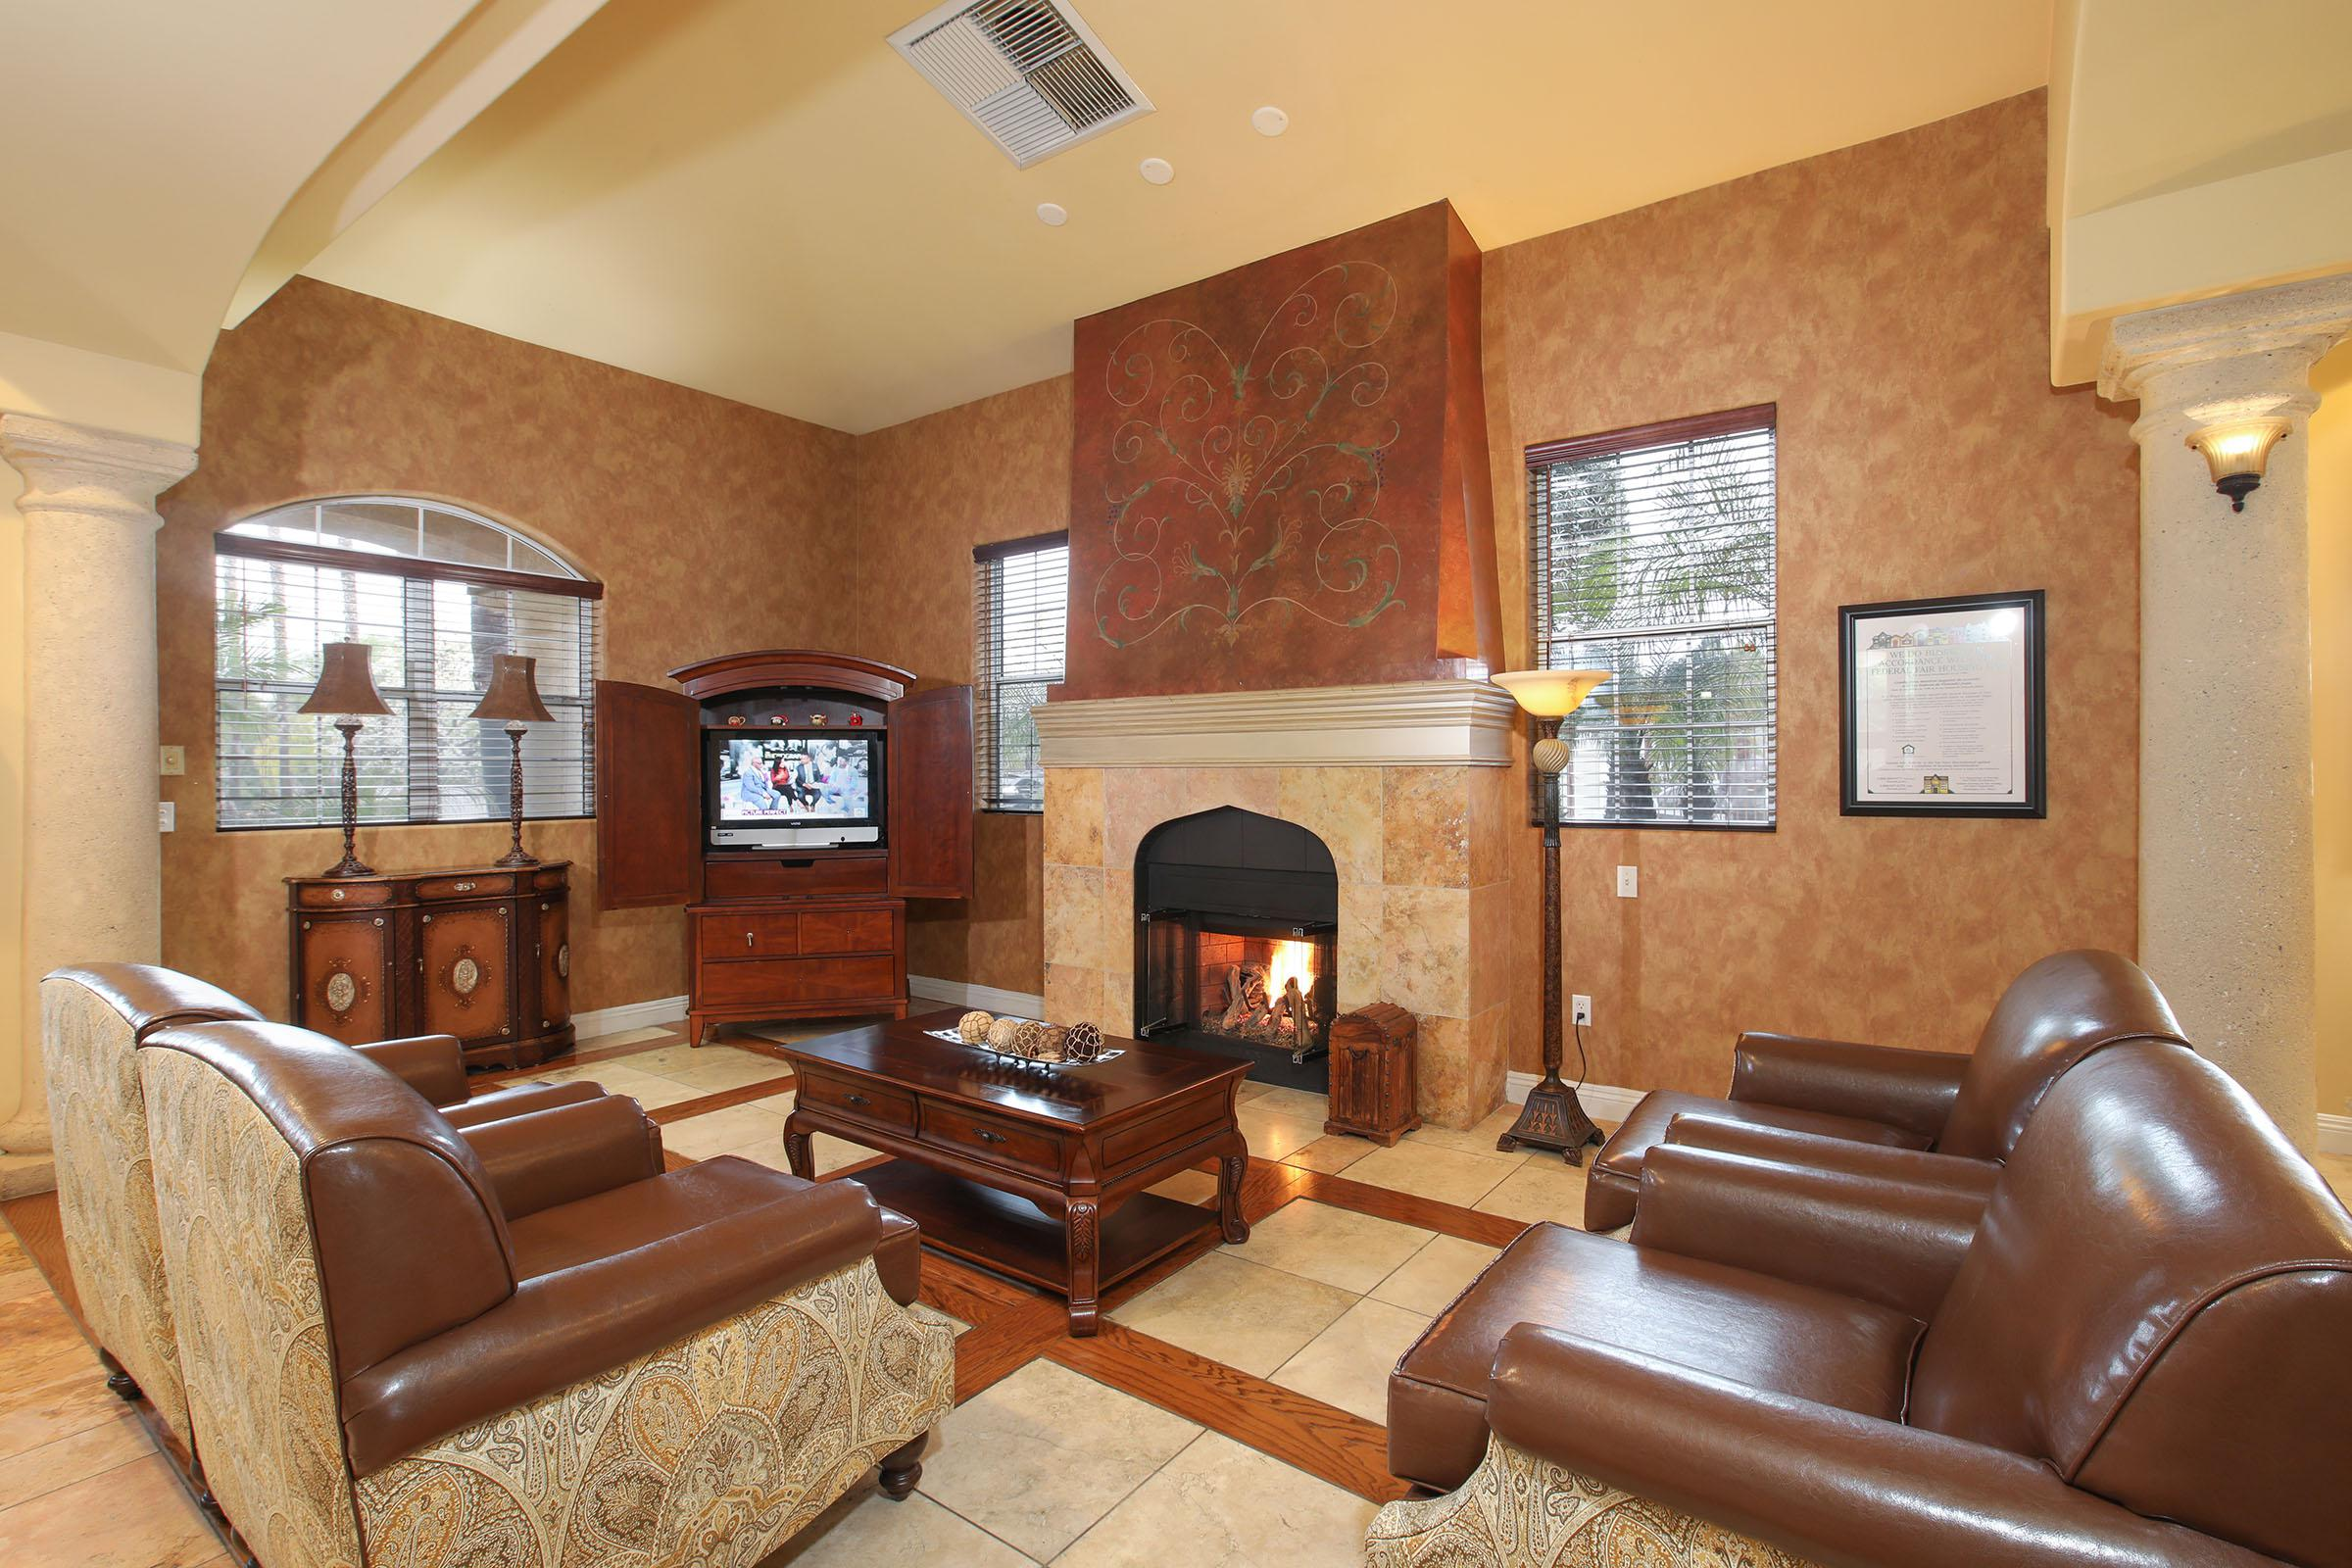 a living room filled with furniture and a fire place sitting in a chair